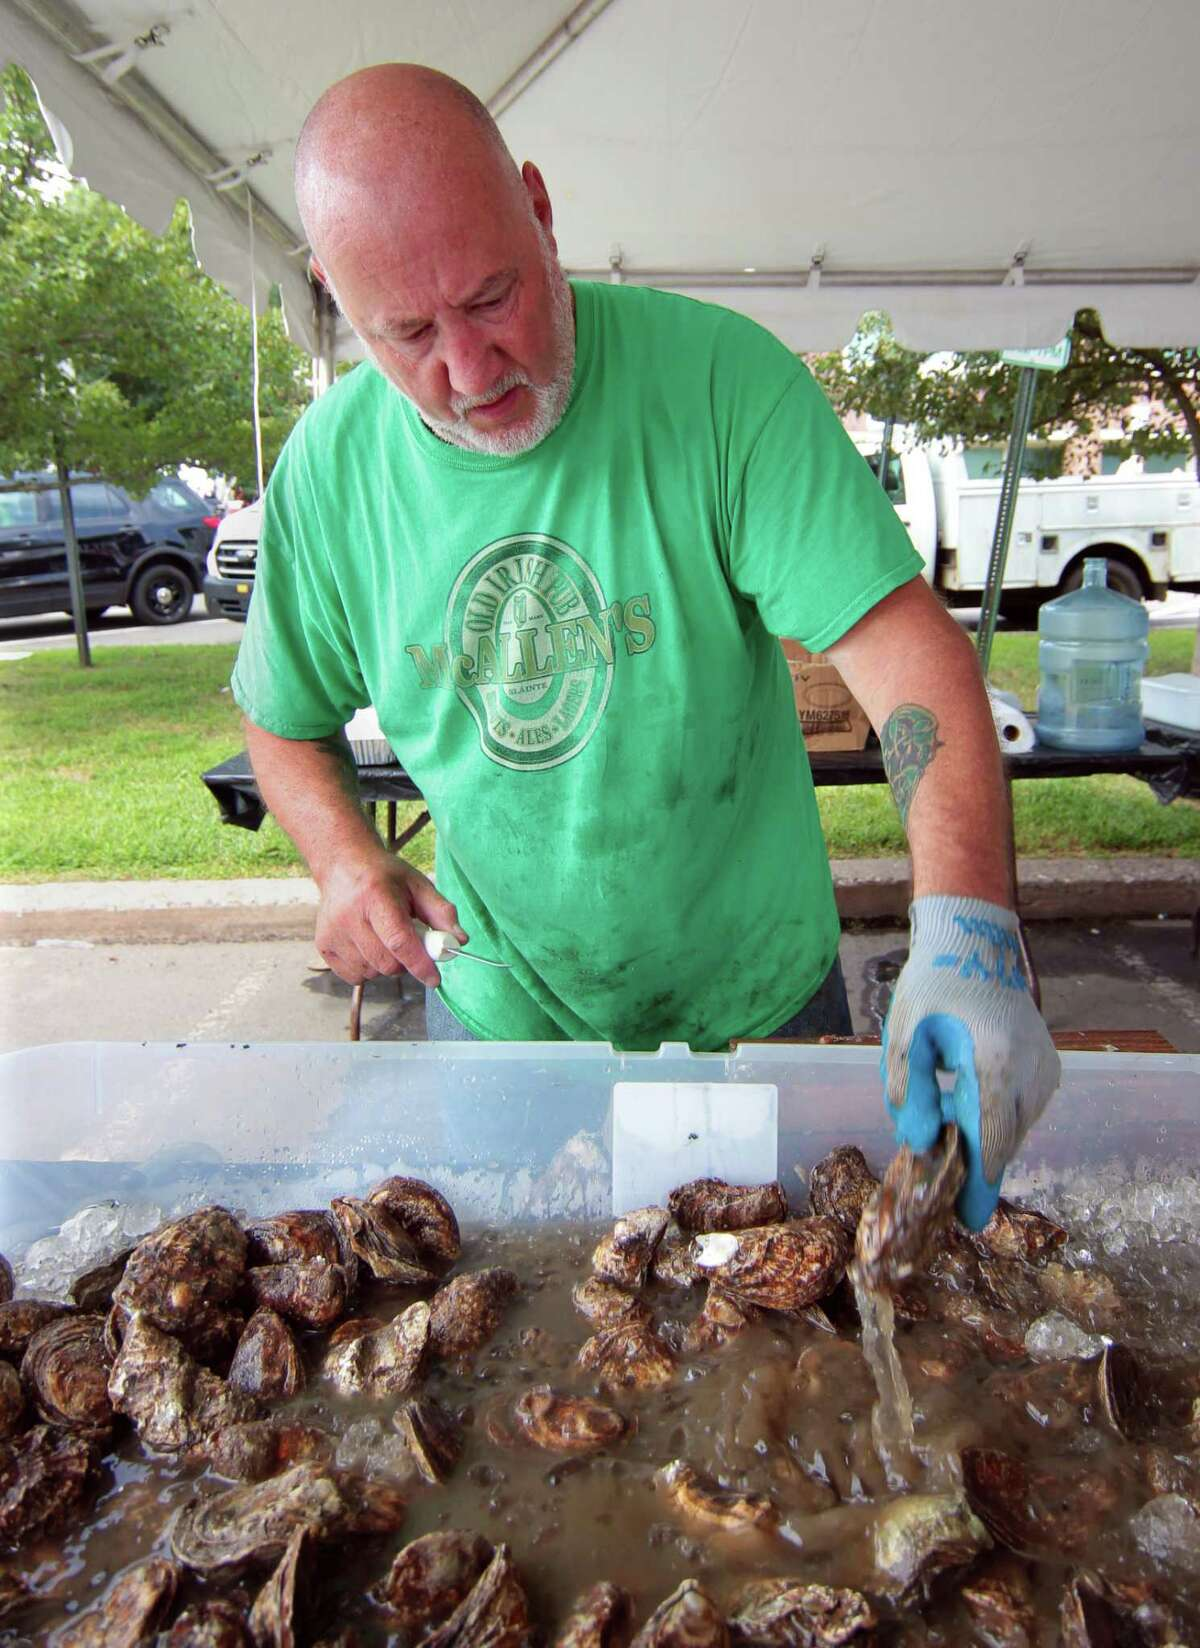 Dave McAllen shucks oysters during the 47th Annual Milford Oyster Festival in downtown Milford, Conn., on Saturday August 21, 2021.